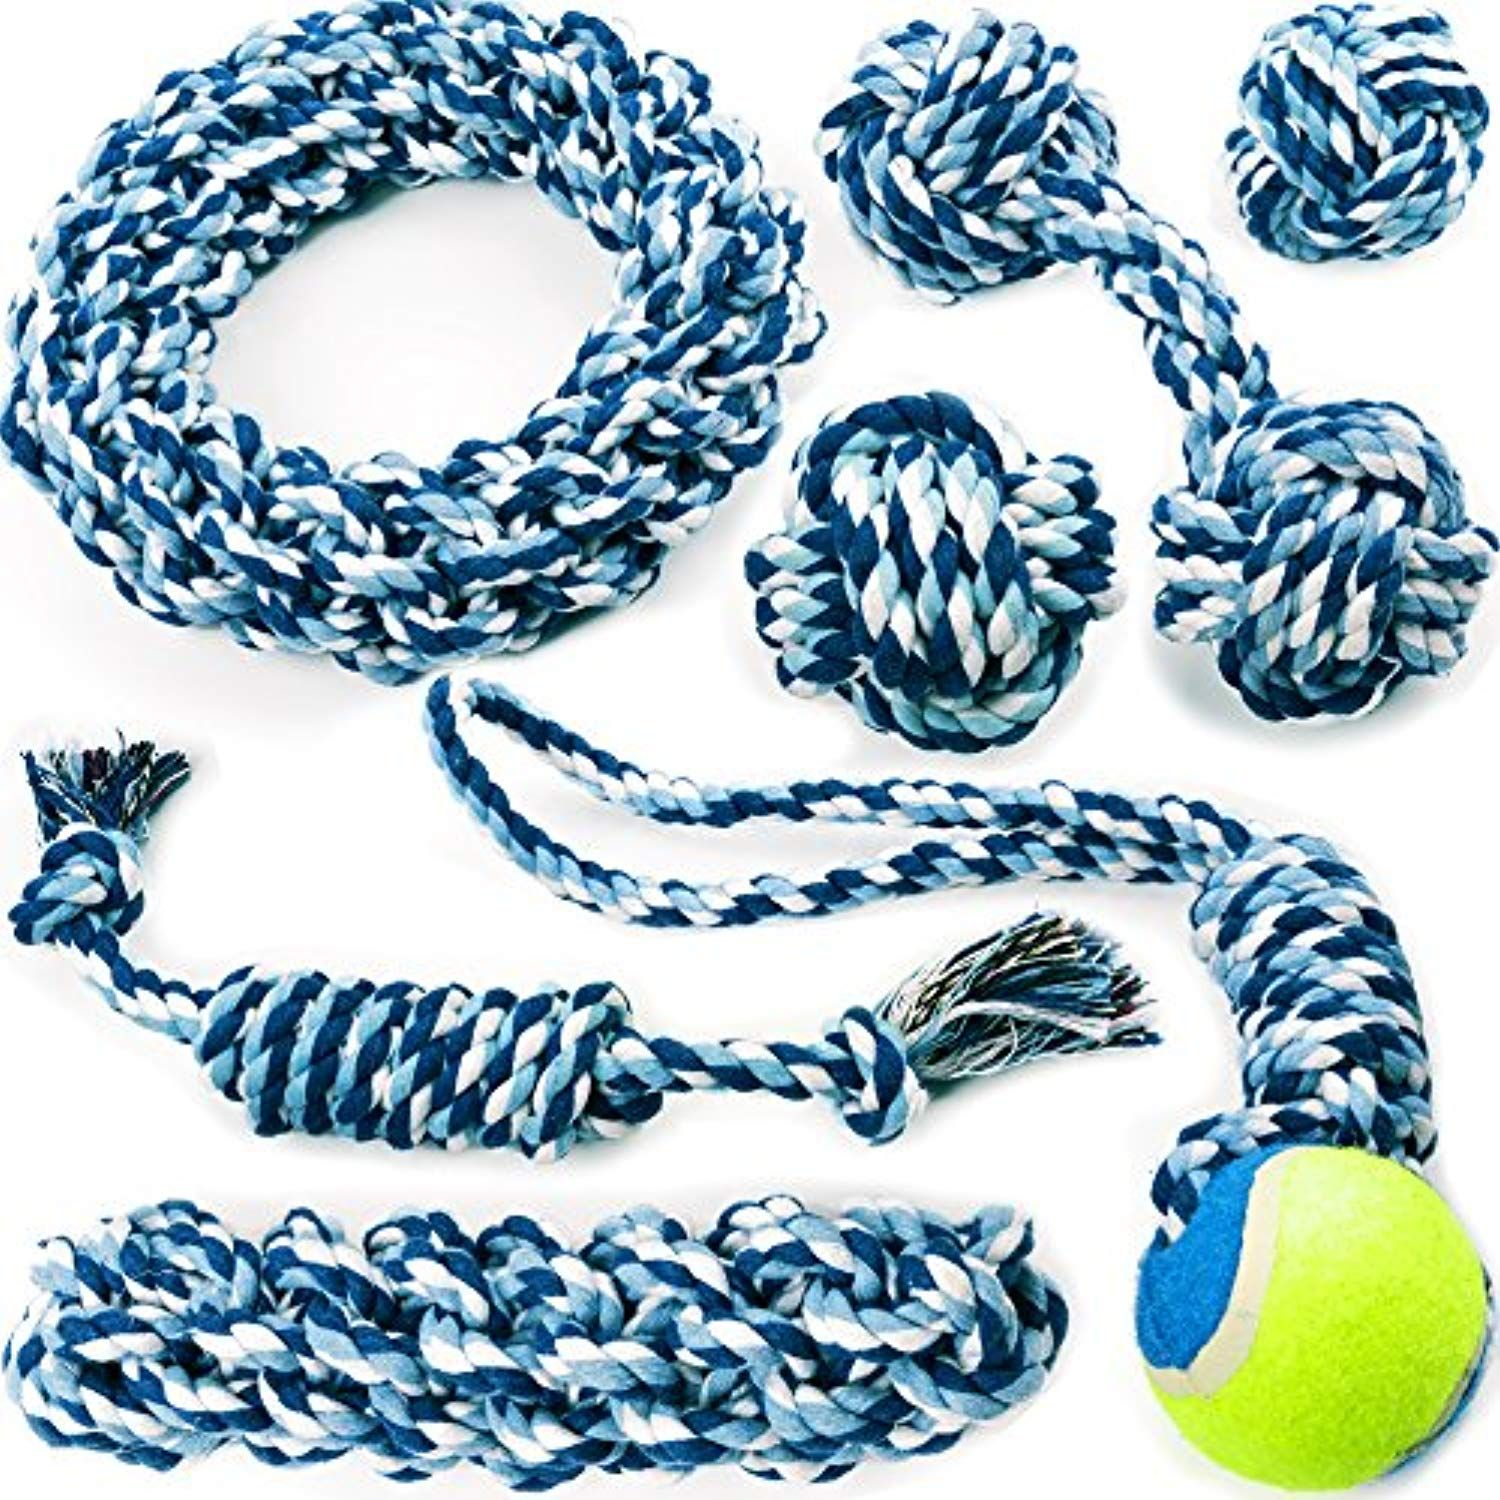 Chewers Play Dog Rope Toy For Medium Dogs And Puppy Teething Tug